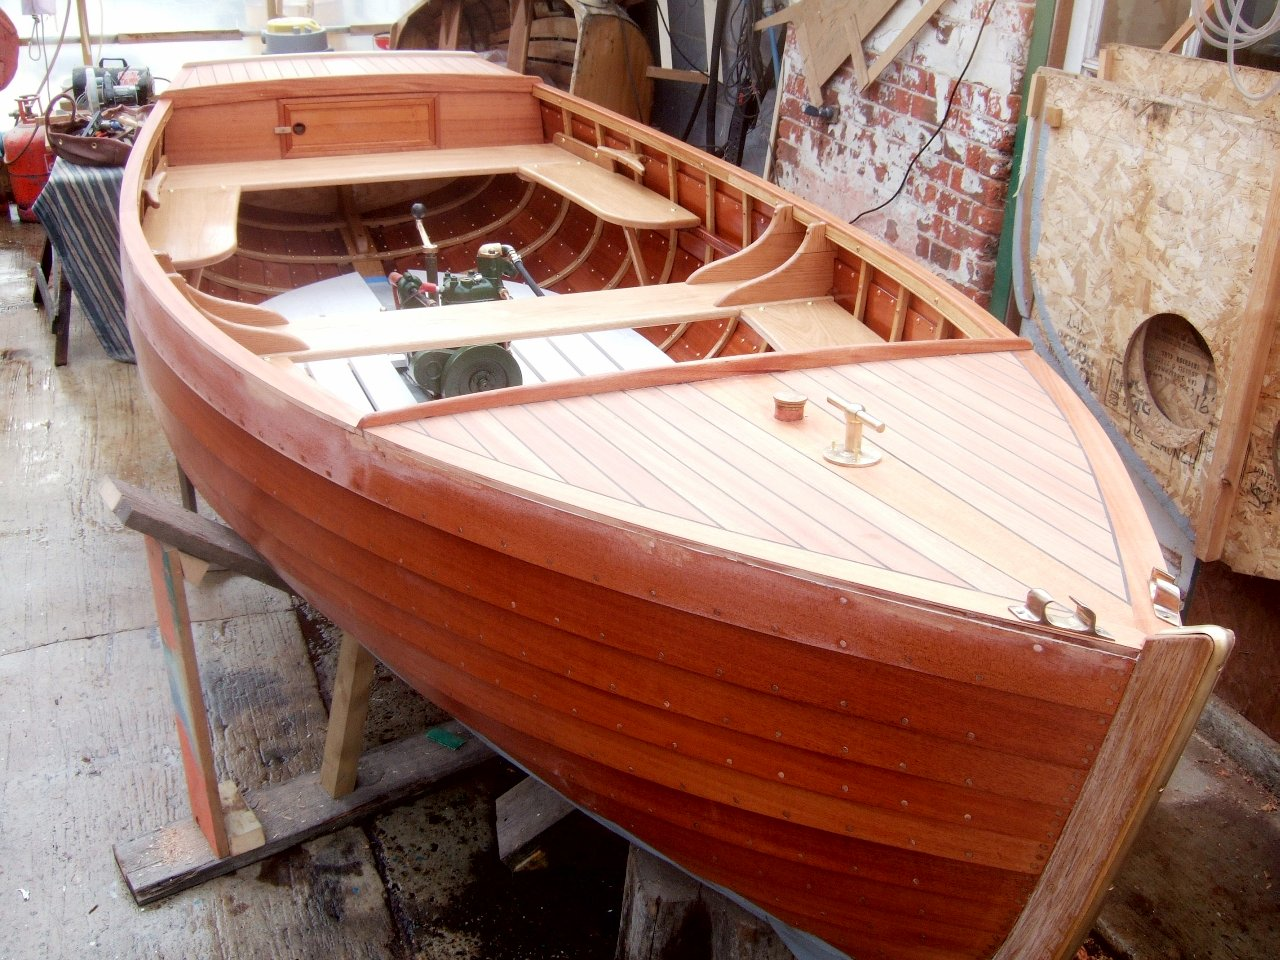 More of Nick Smith's handsome clinker-built launches – intheboatshed.net